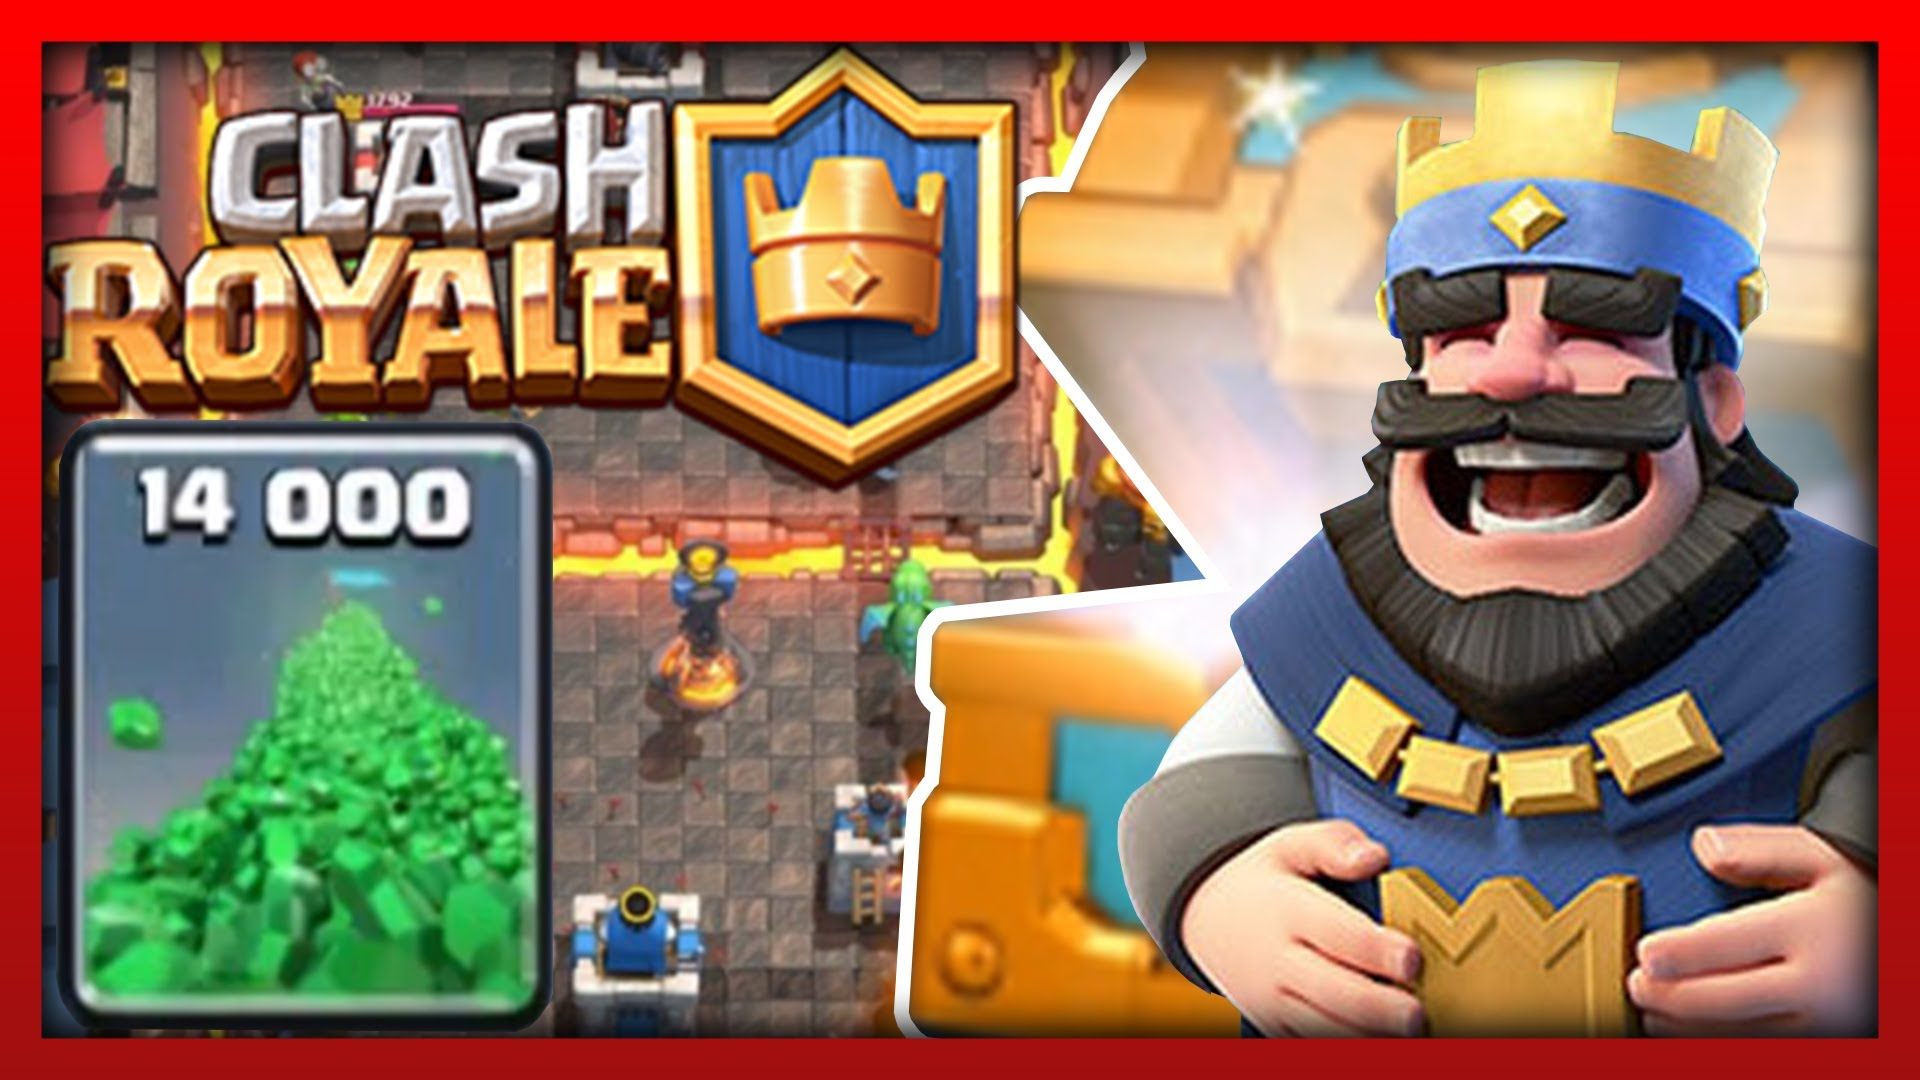 Best Way to Spend Gems in Clash Royale